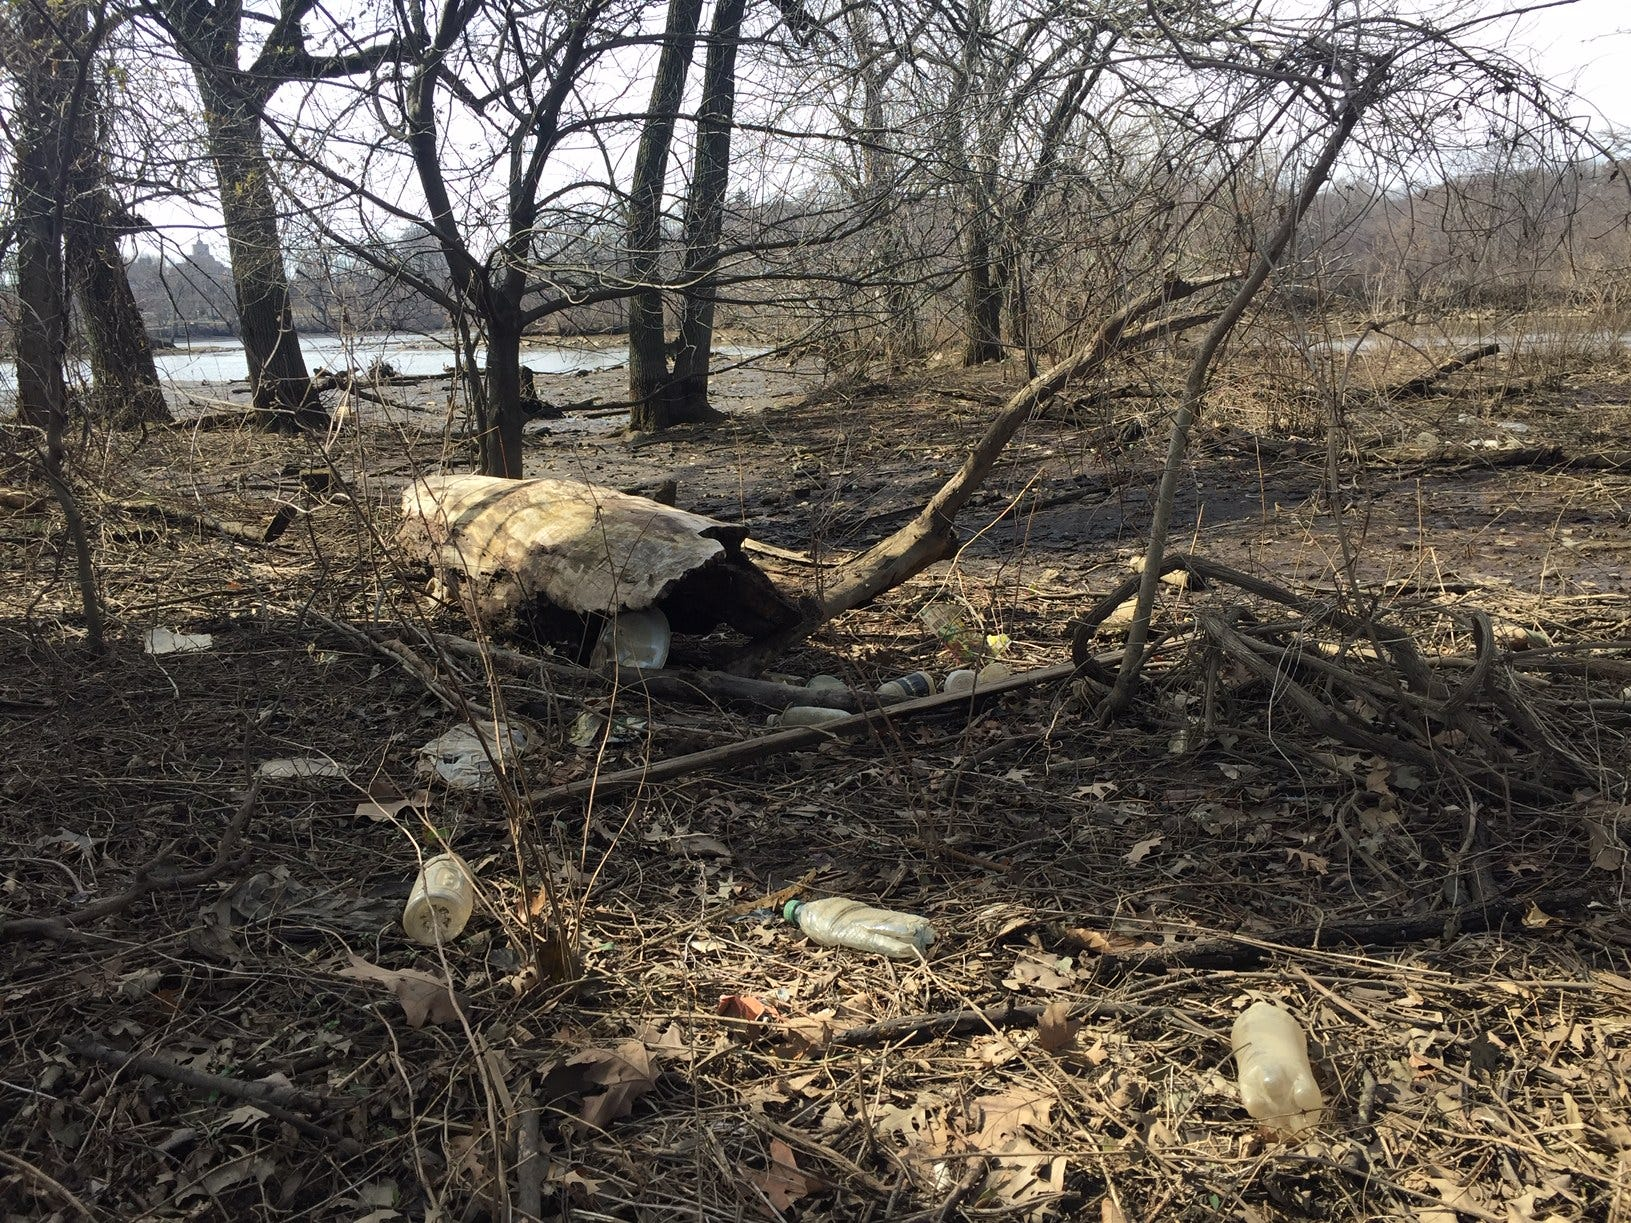 Much debris along the Cooper River banks of Gateway park remains to be cleaned up because Camden County w wanted to open the park's walking and biking trails and its grasslands as soon as possible before major improvements get underway.